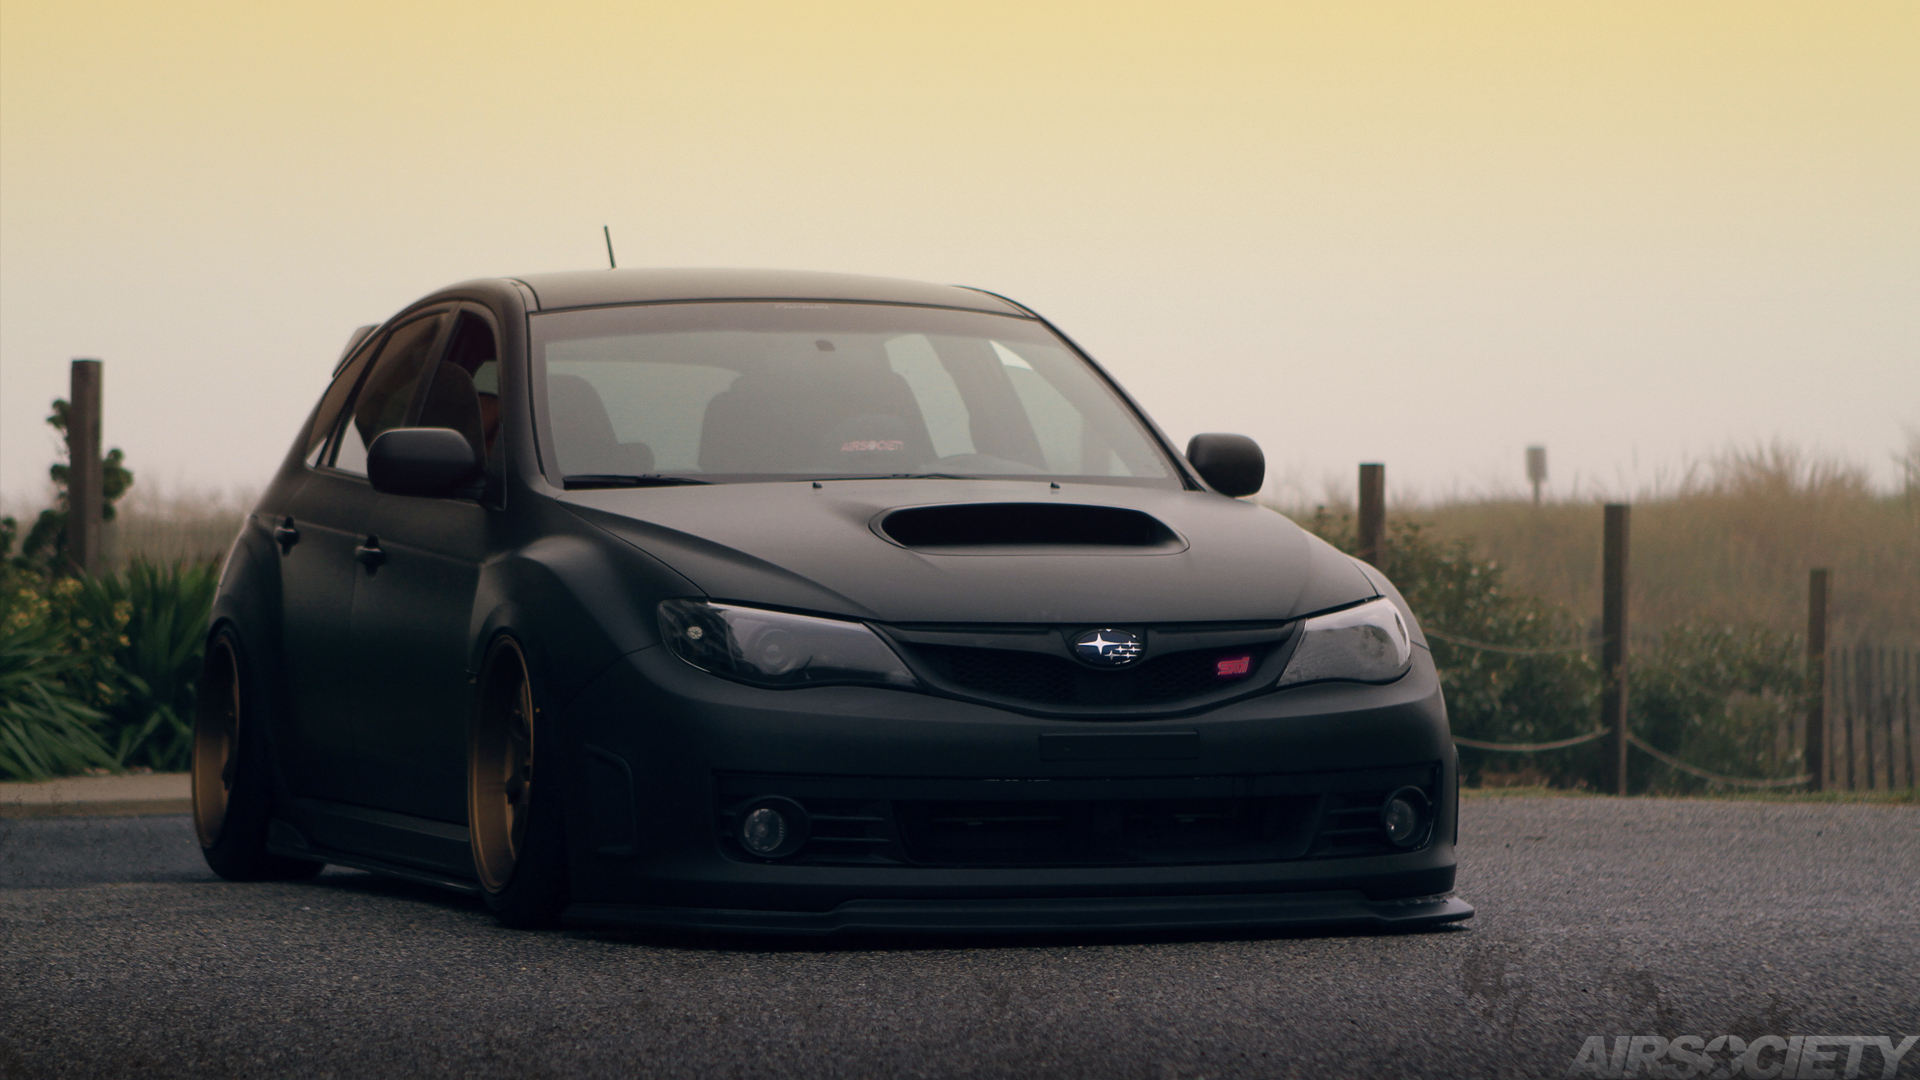 [49+] Stance Subaru STI Wallpaper on WallpaperSafari